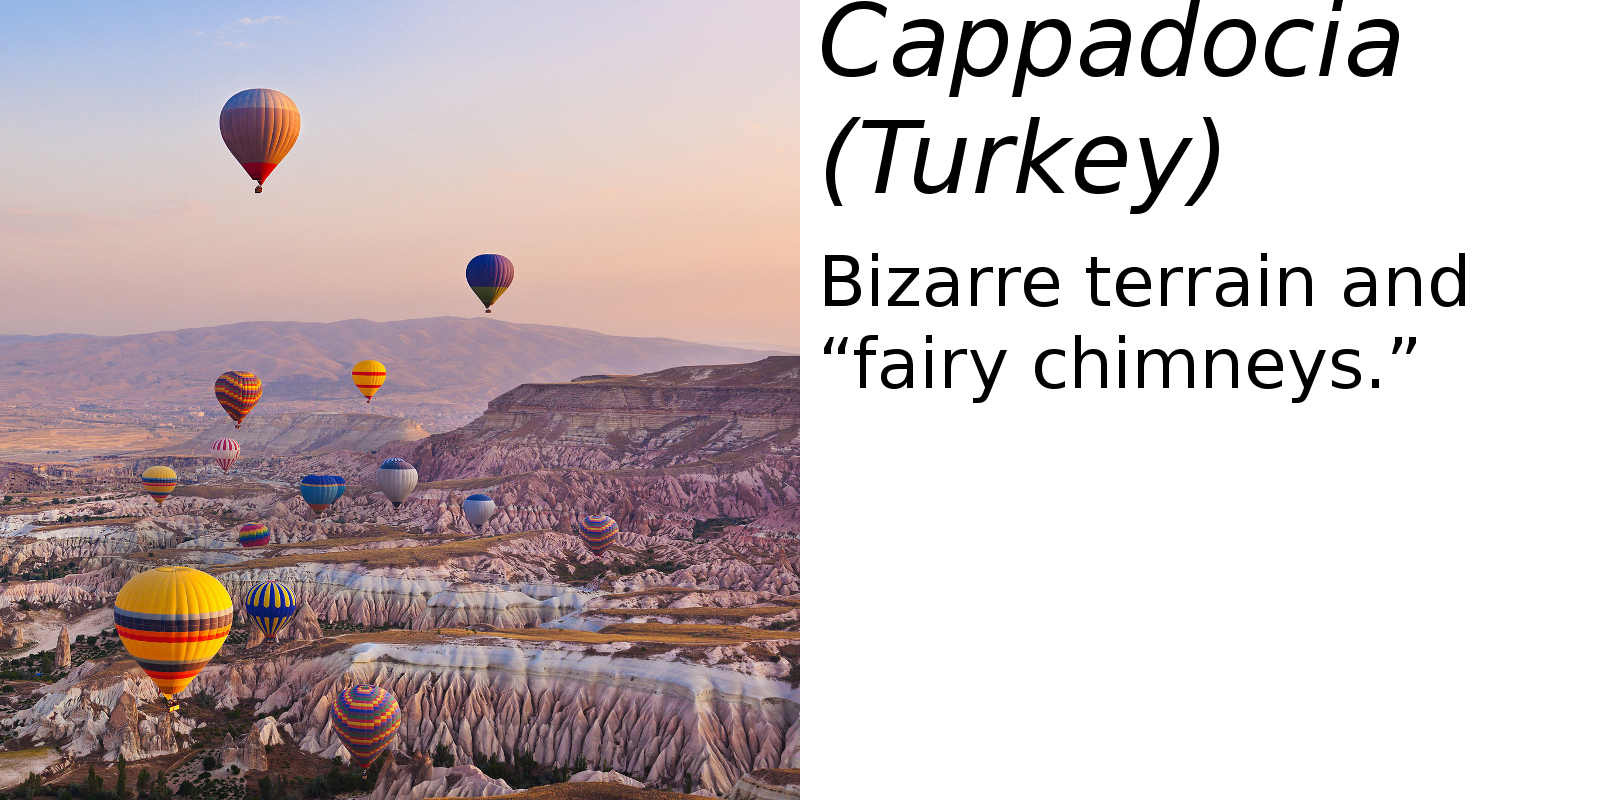 Cappadocia, Turkey (description) #2